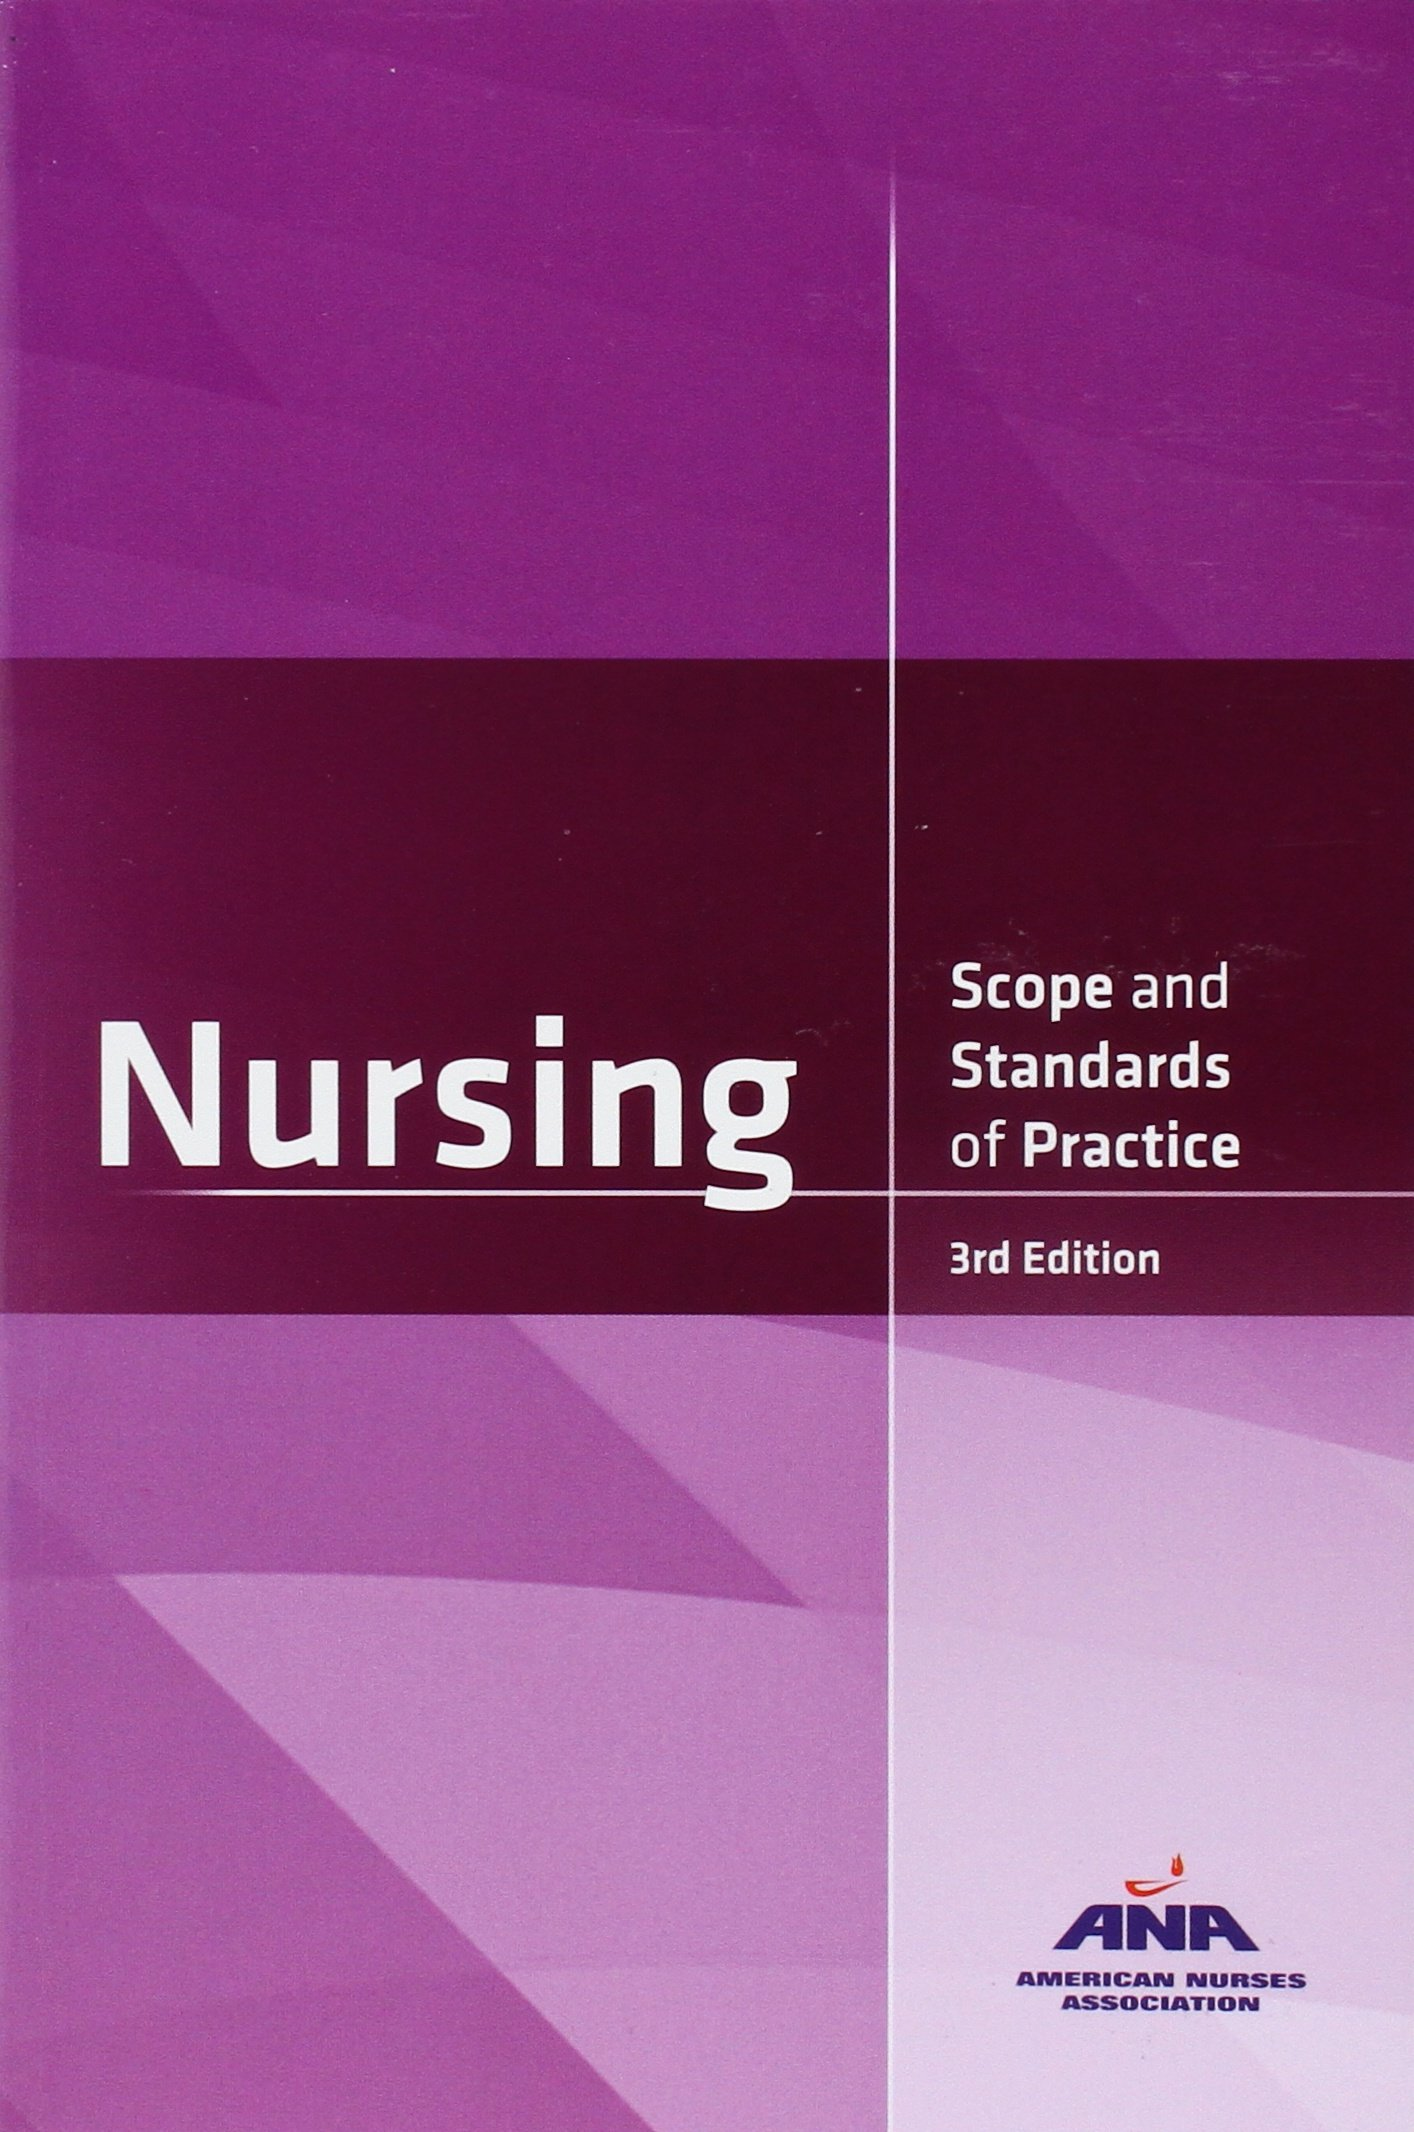 Nursing: Scope and Standards of Practice, 3rd Edition